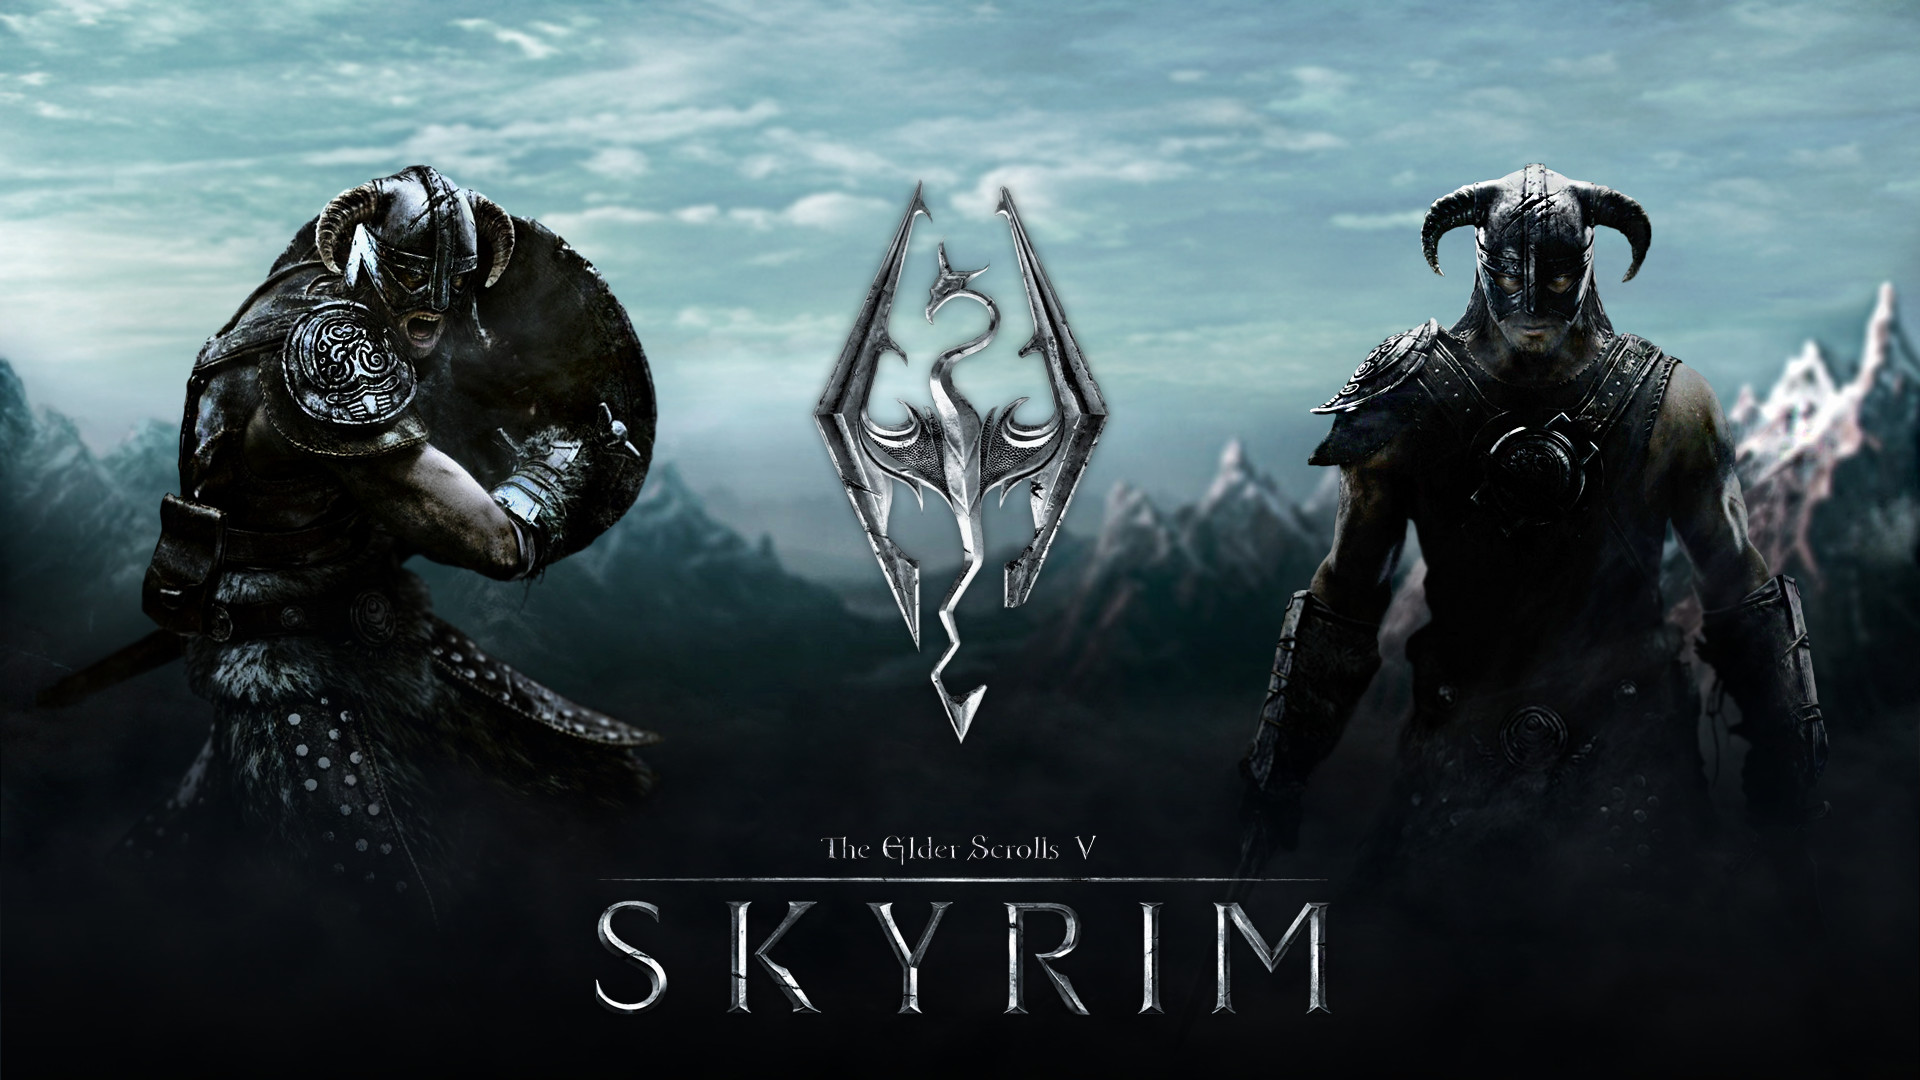 How To Get Skyrim For Pc